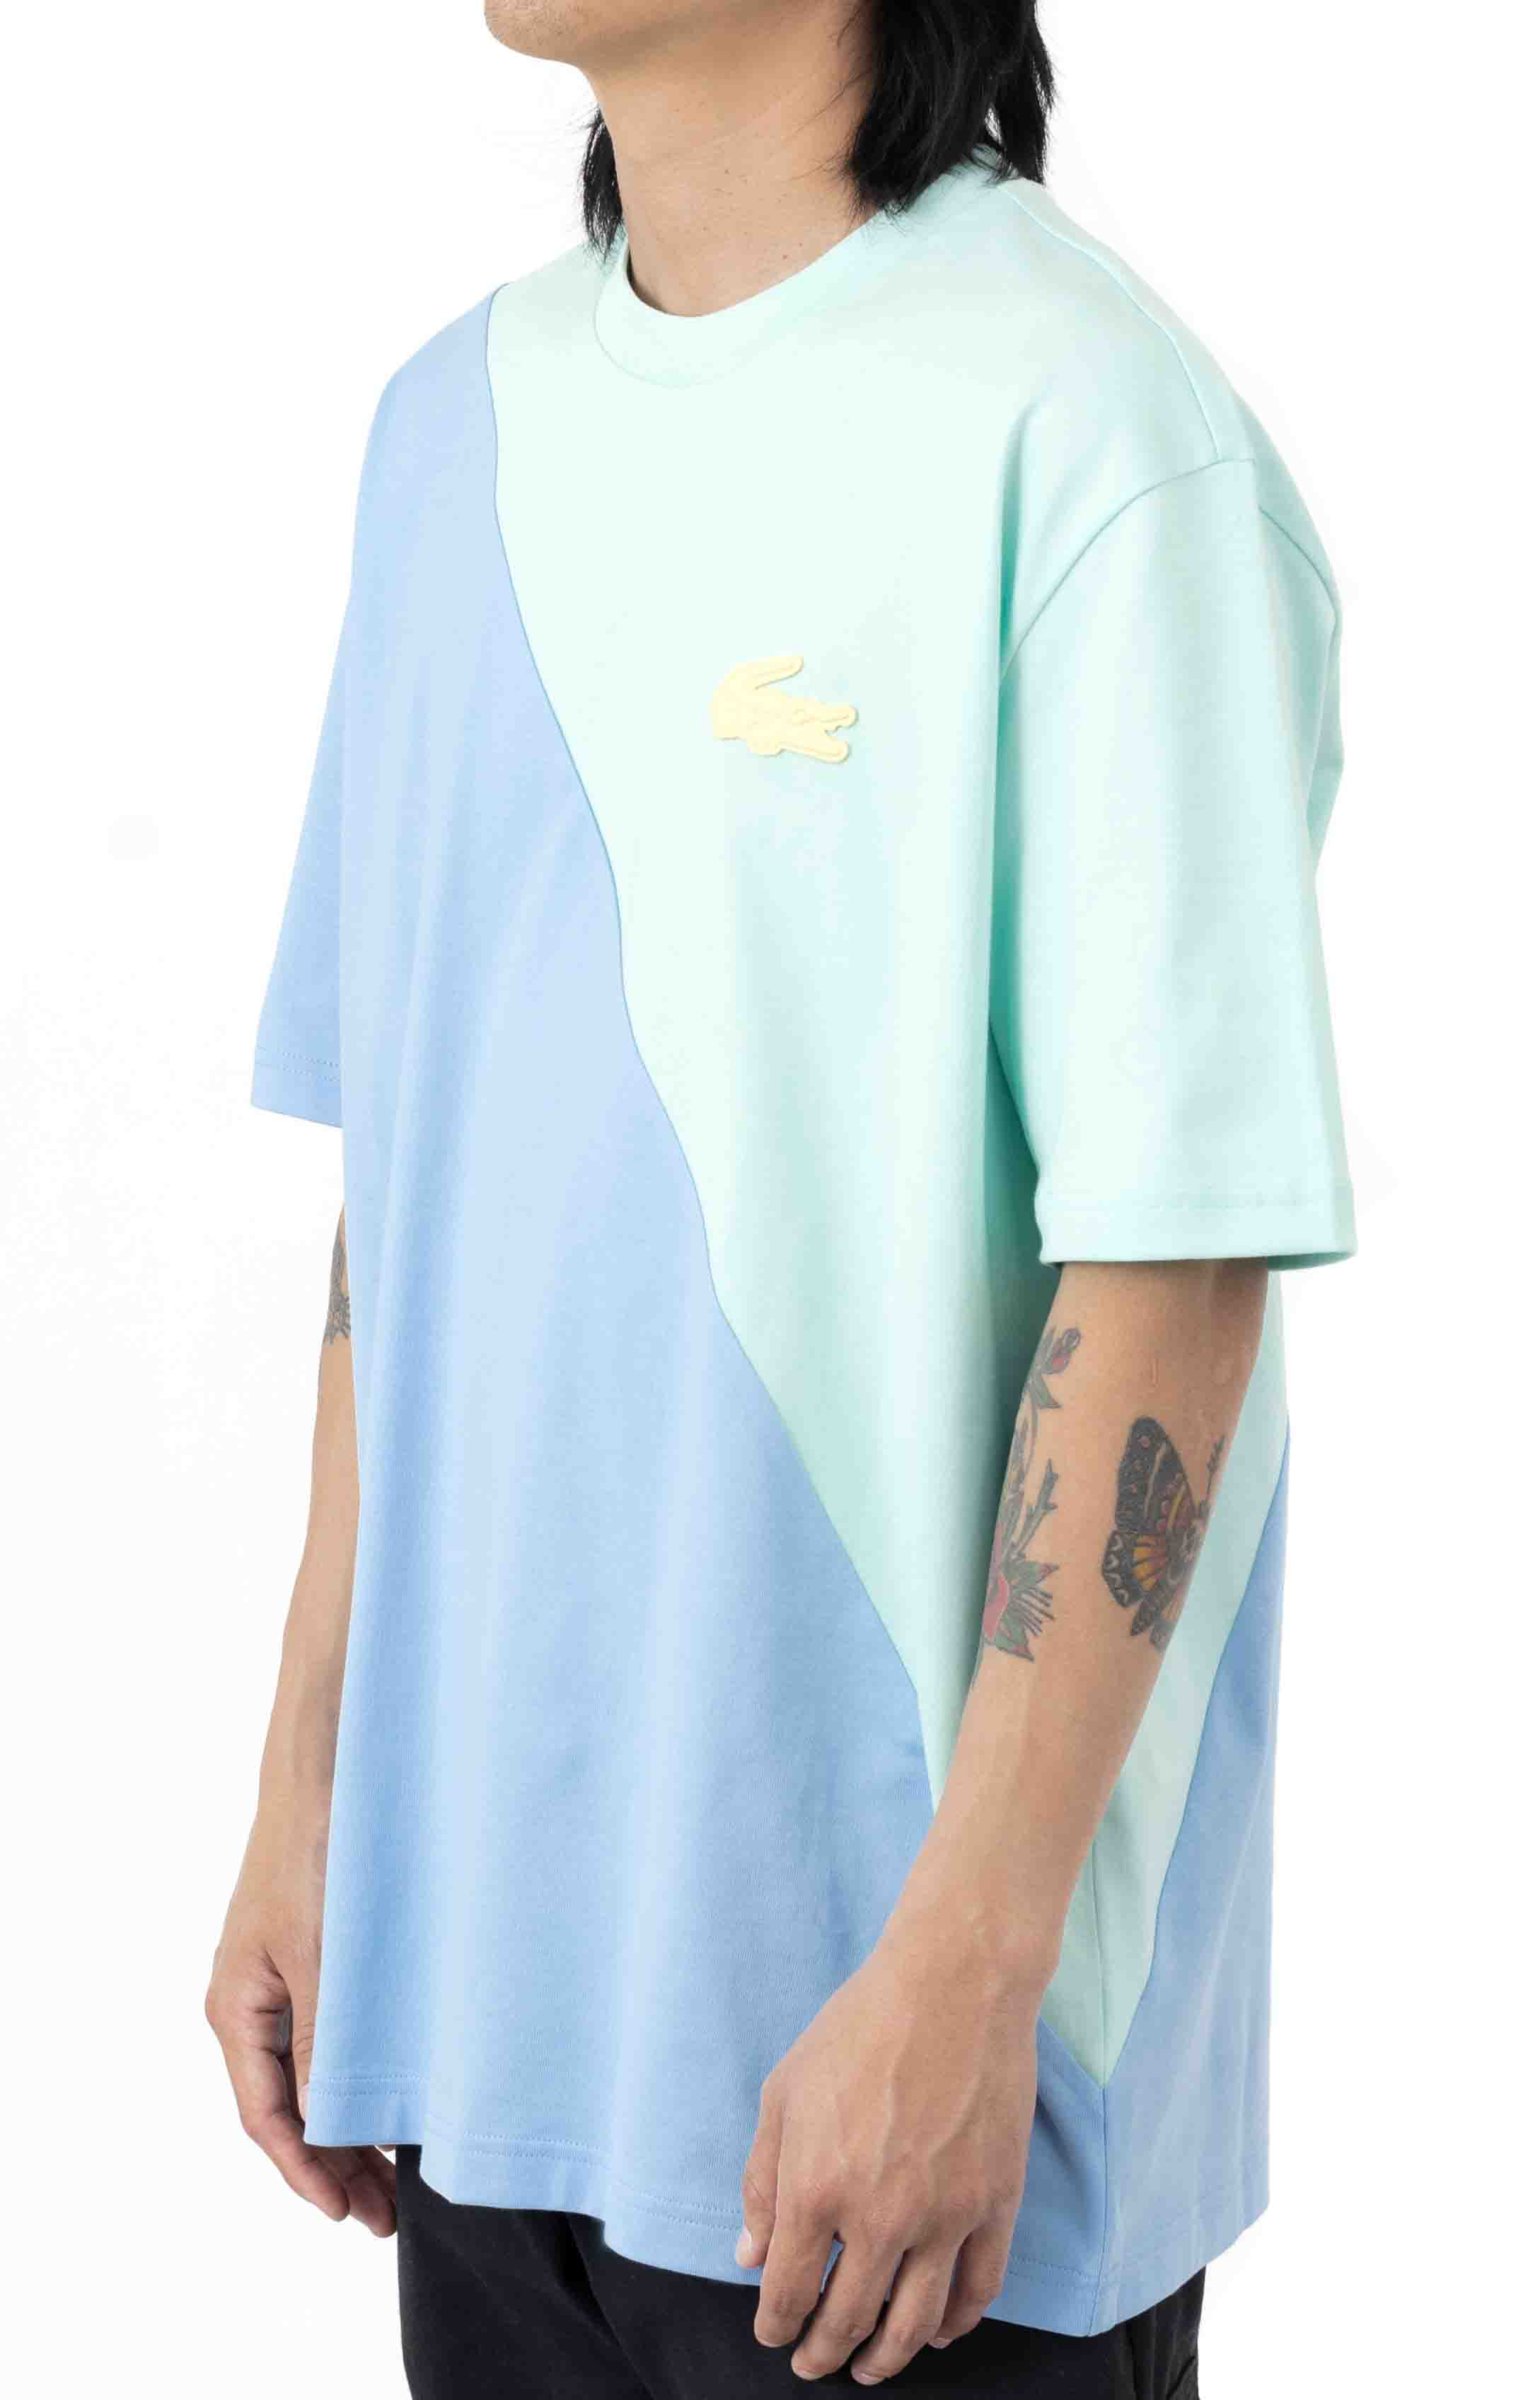 LIVE Loose Fit Colorblock T-Shirt - Turquoise/Blue 2